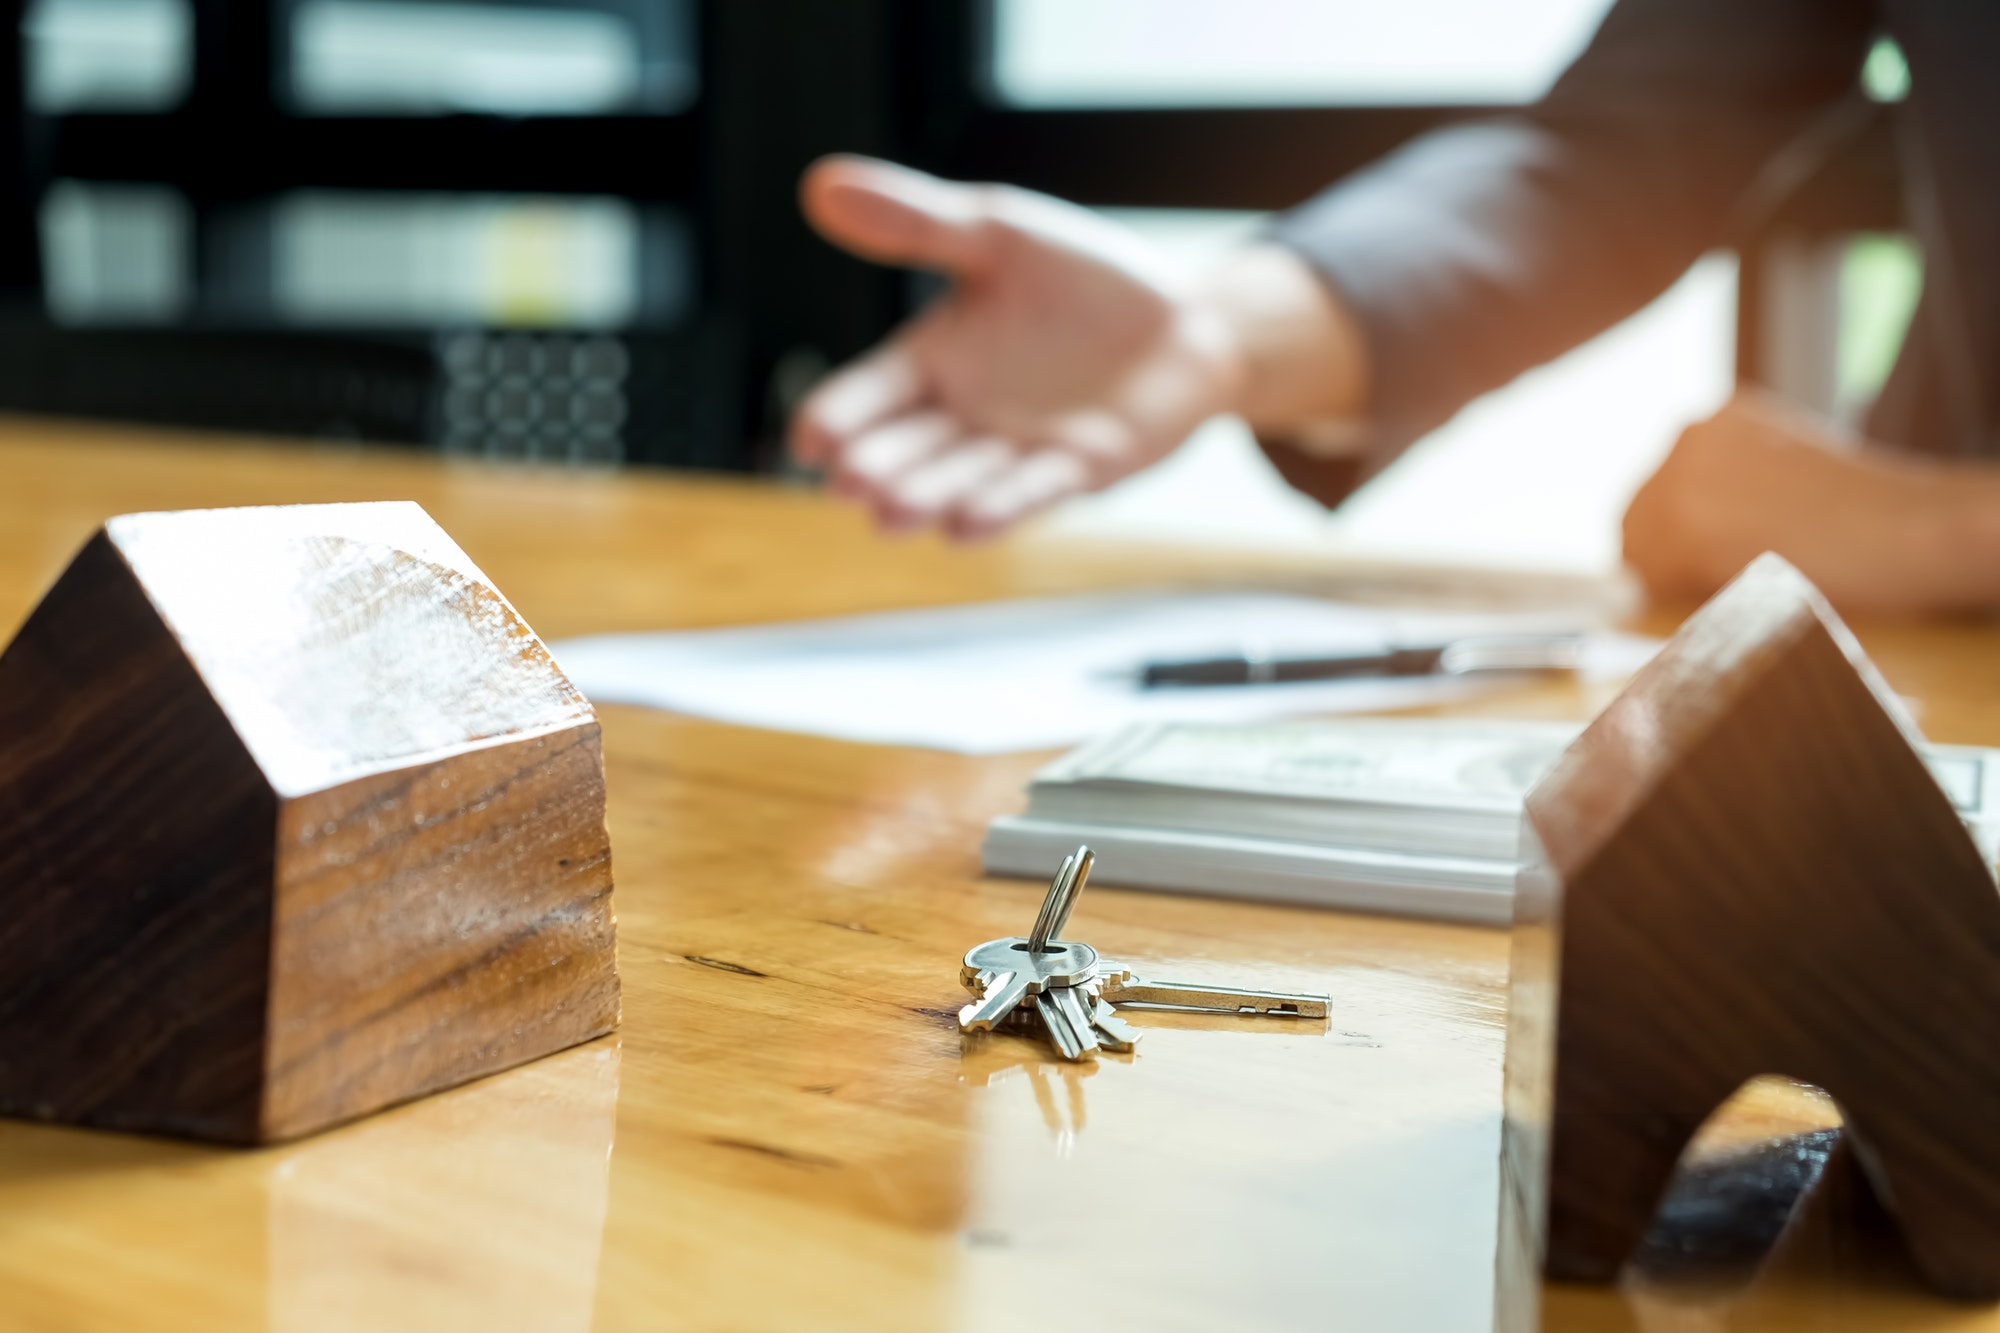 Sales are selling home. There are documents with the replica and